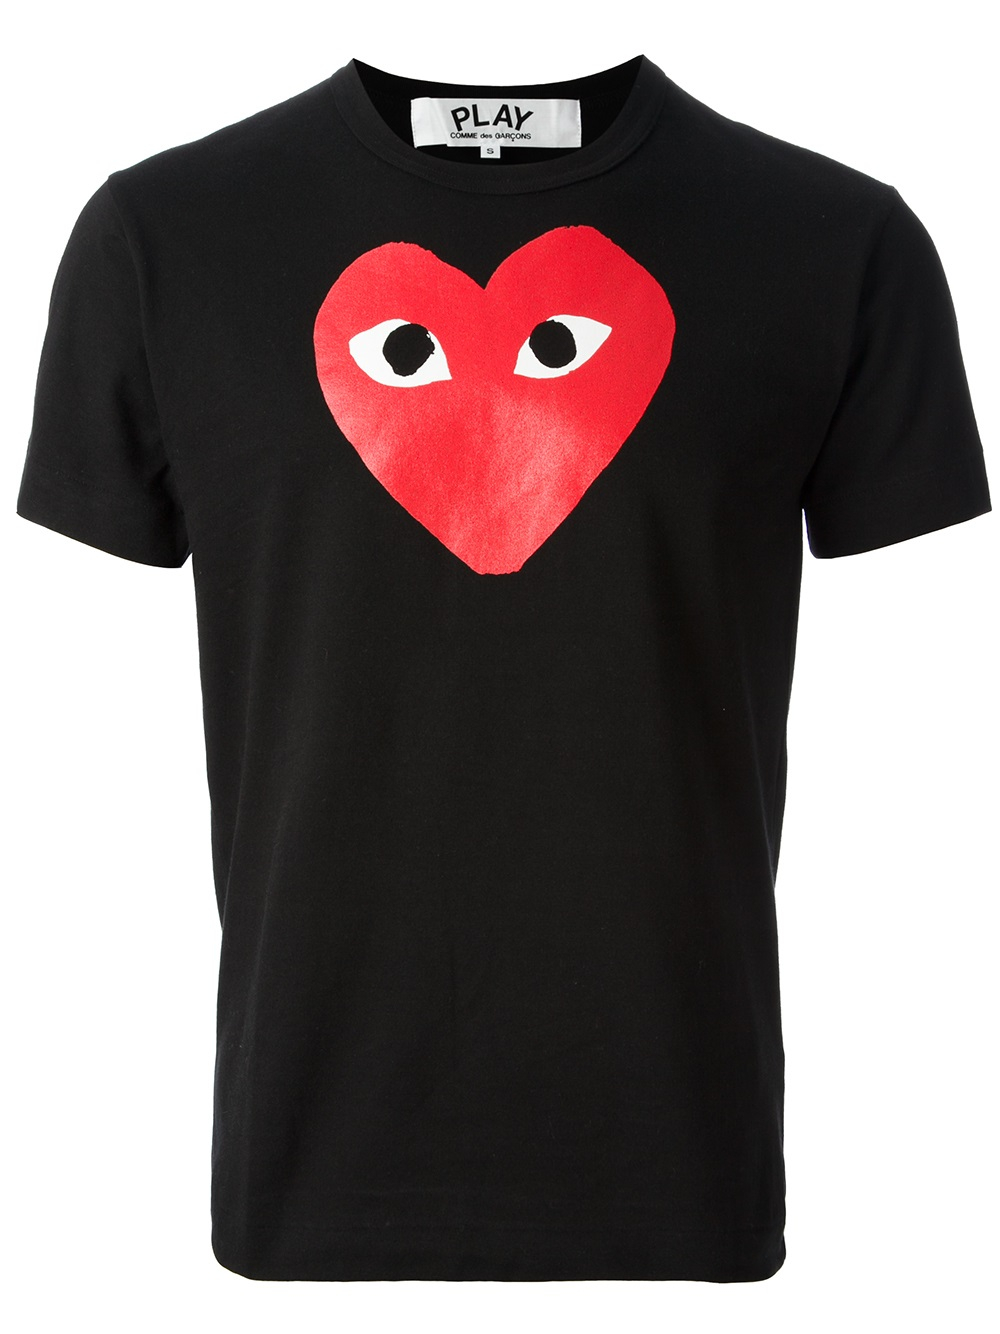 play comme des gar ons printed heart t shirt in black for. Black Bedroom Furniture Sets. Home Design Ideas